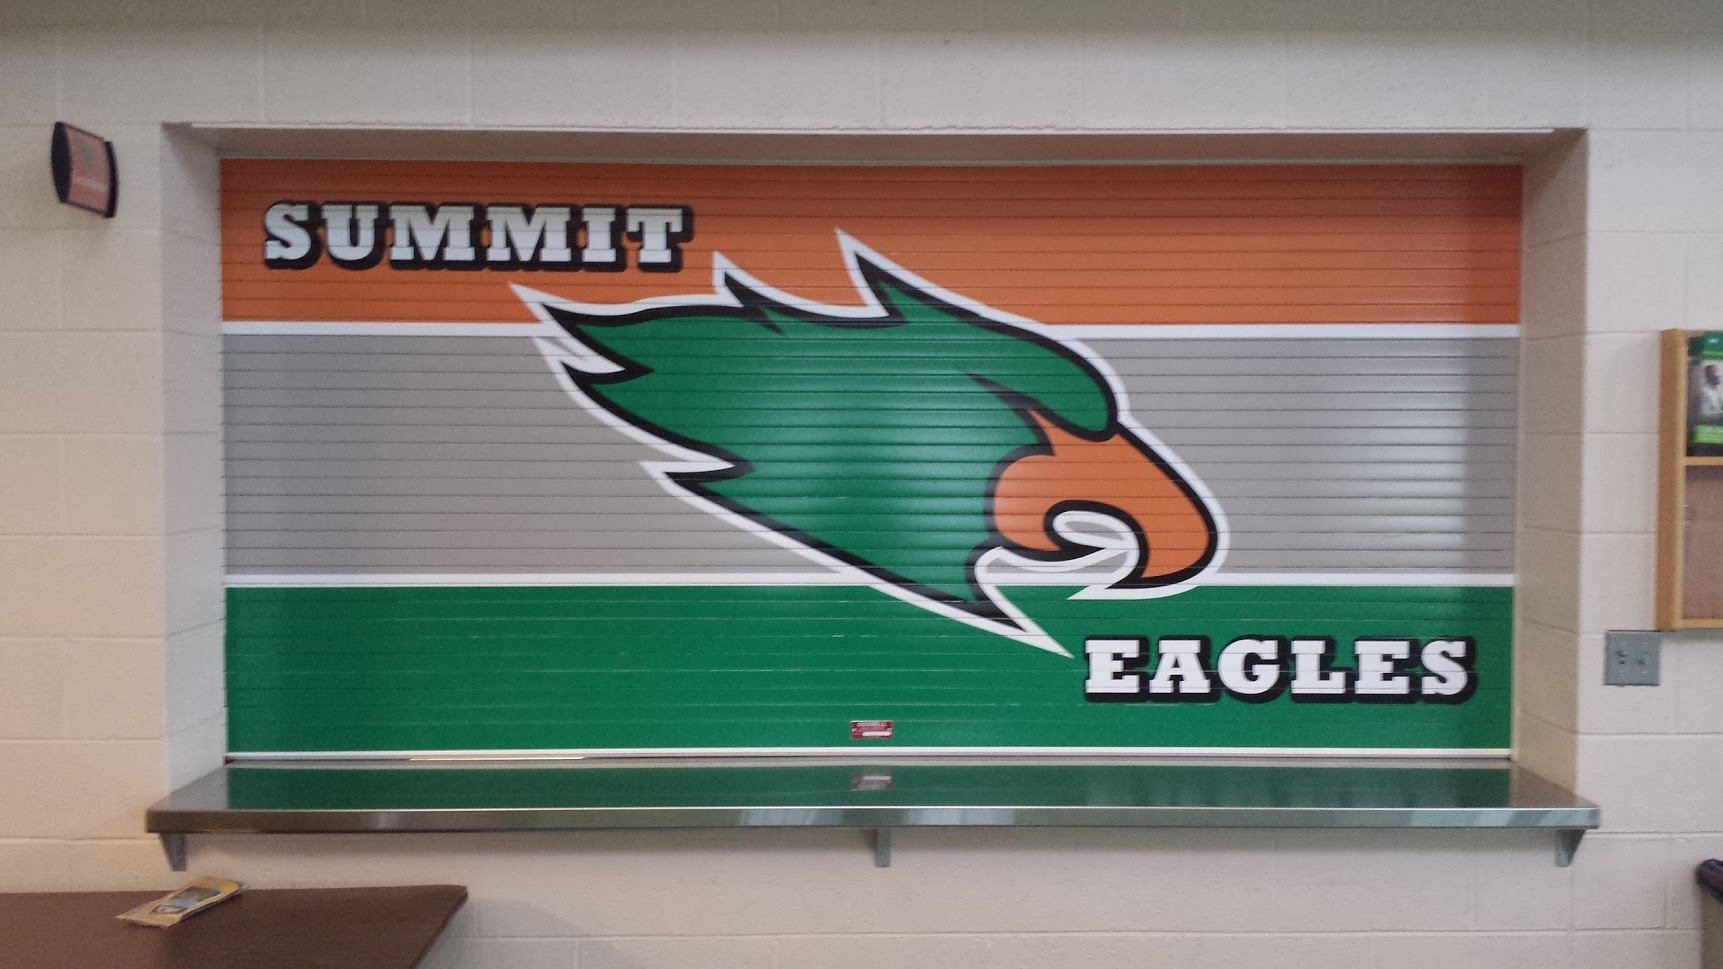 summit eagles vinyl wrap graphics display